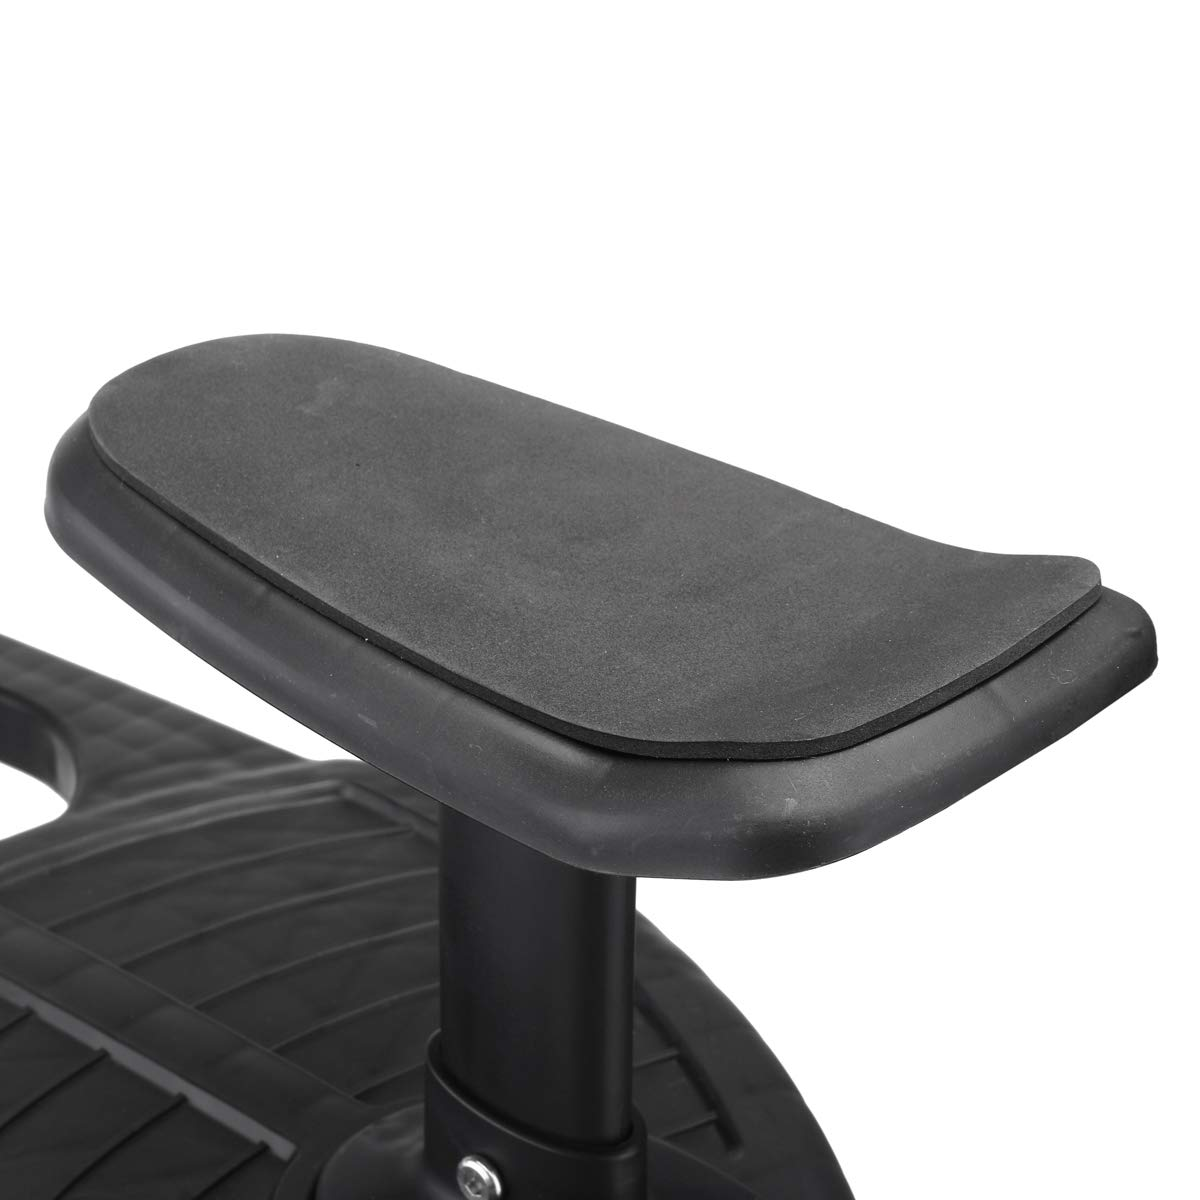 ZUINIUBI Kids Hitch Ride-On Stroller Step Board-Comfort Easy Adjustable Wheeled Pushchair Auxiliary Pedal Baby Travel Trailer for Stroller, Buggy, Jogger up Load to 55LB by ZUINIUBI (Image #6)